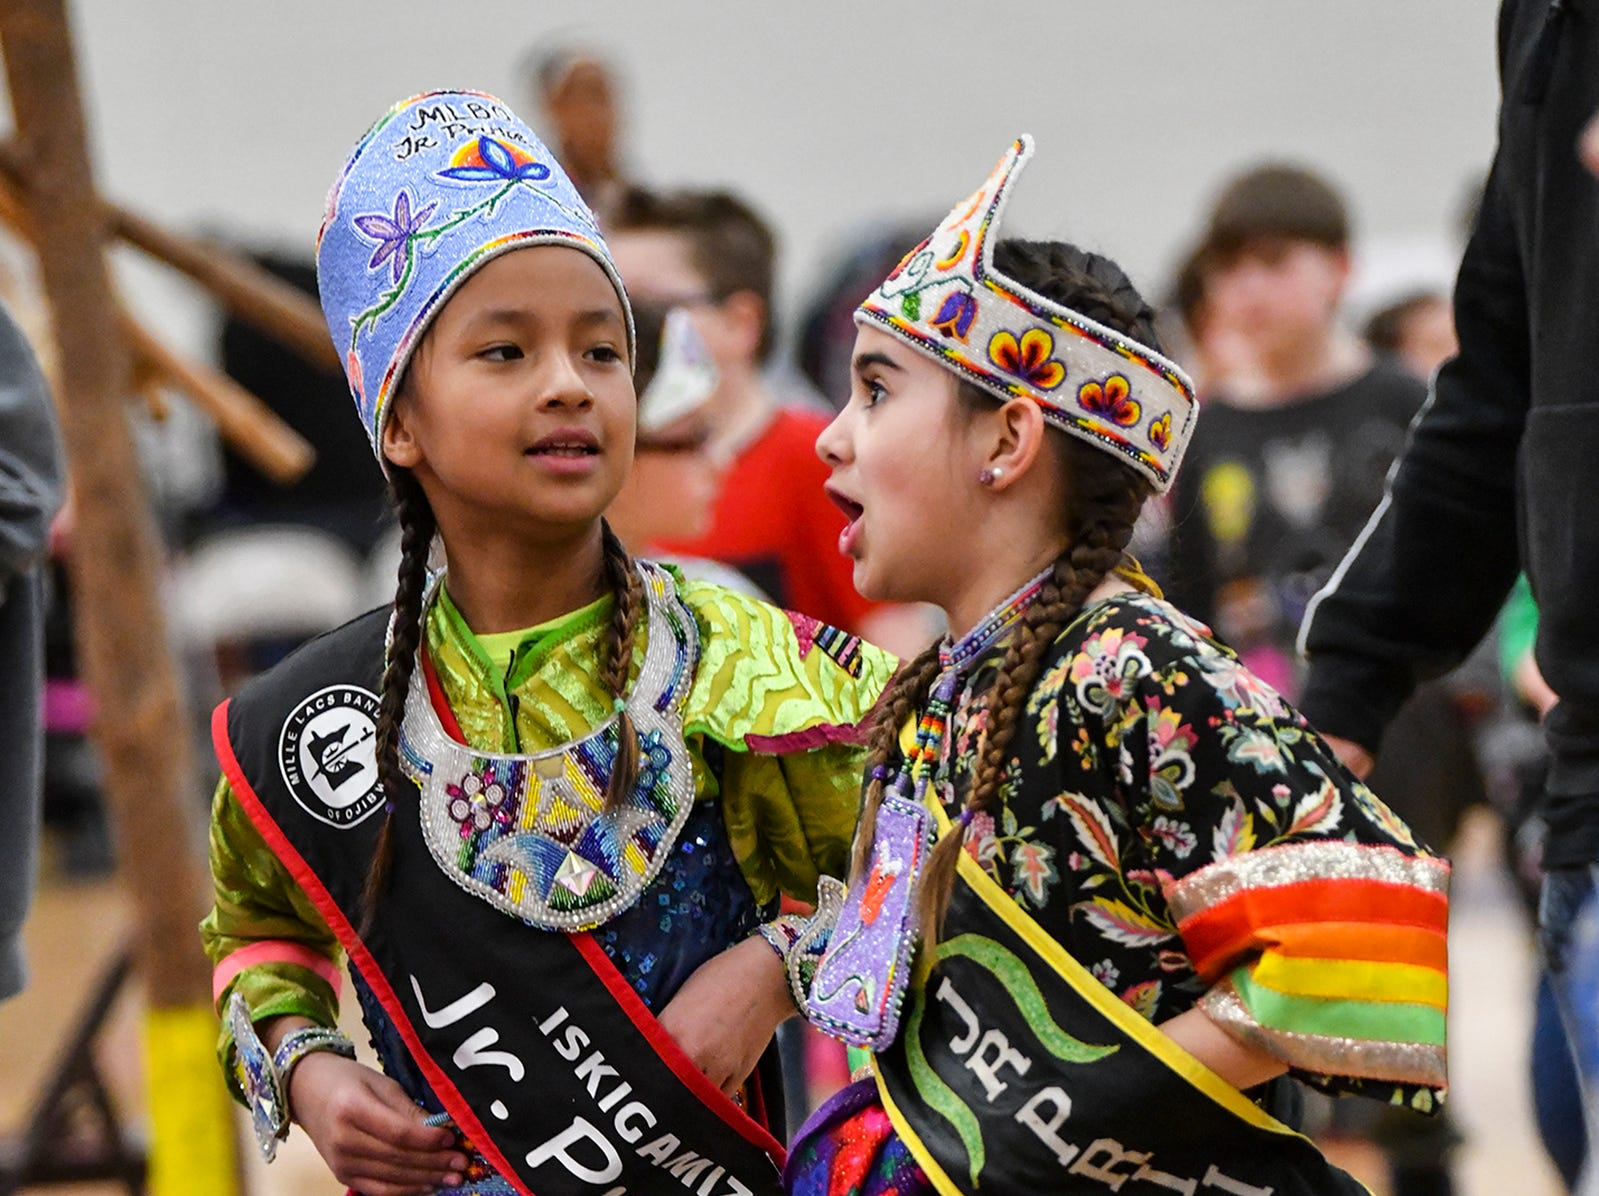 Young dancers take part in the 25th annual American Indian Center Powwow Saturday, April 13, at Apollo High School in St. Cloud.